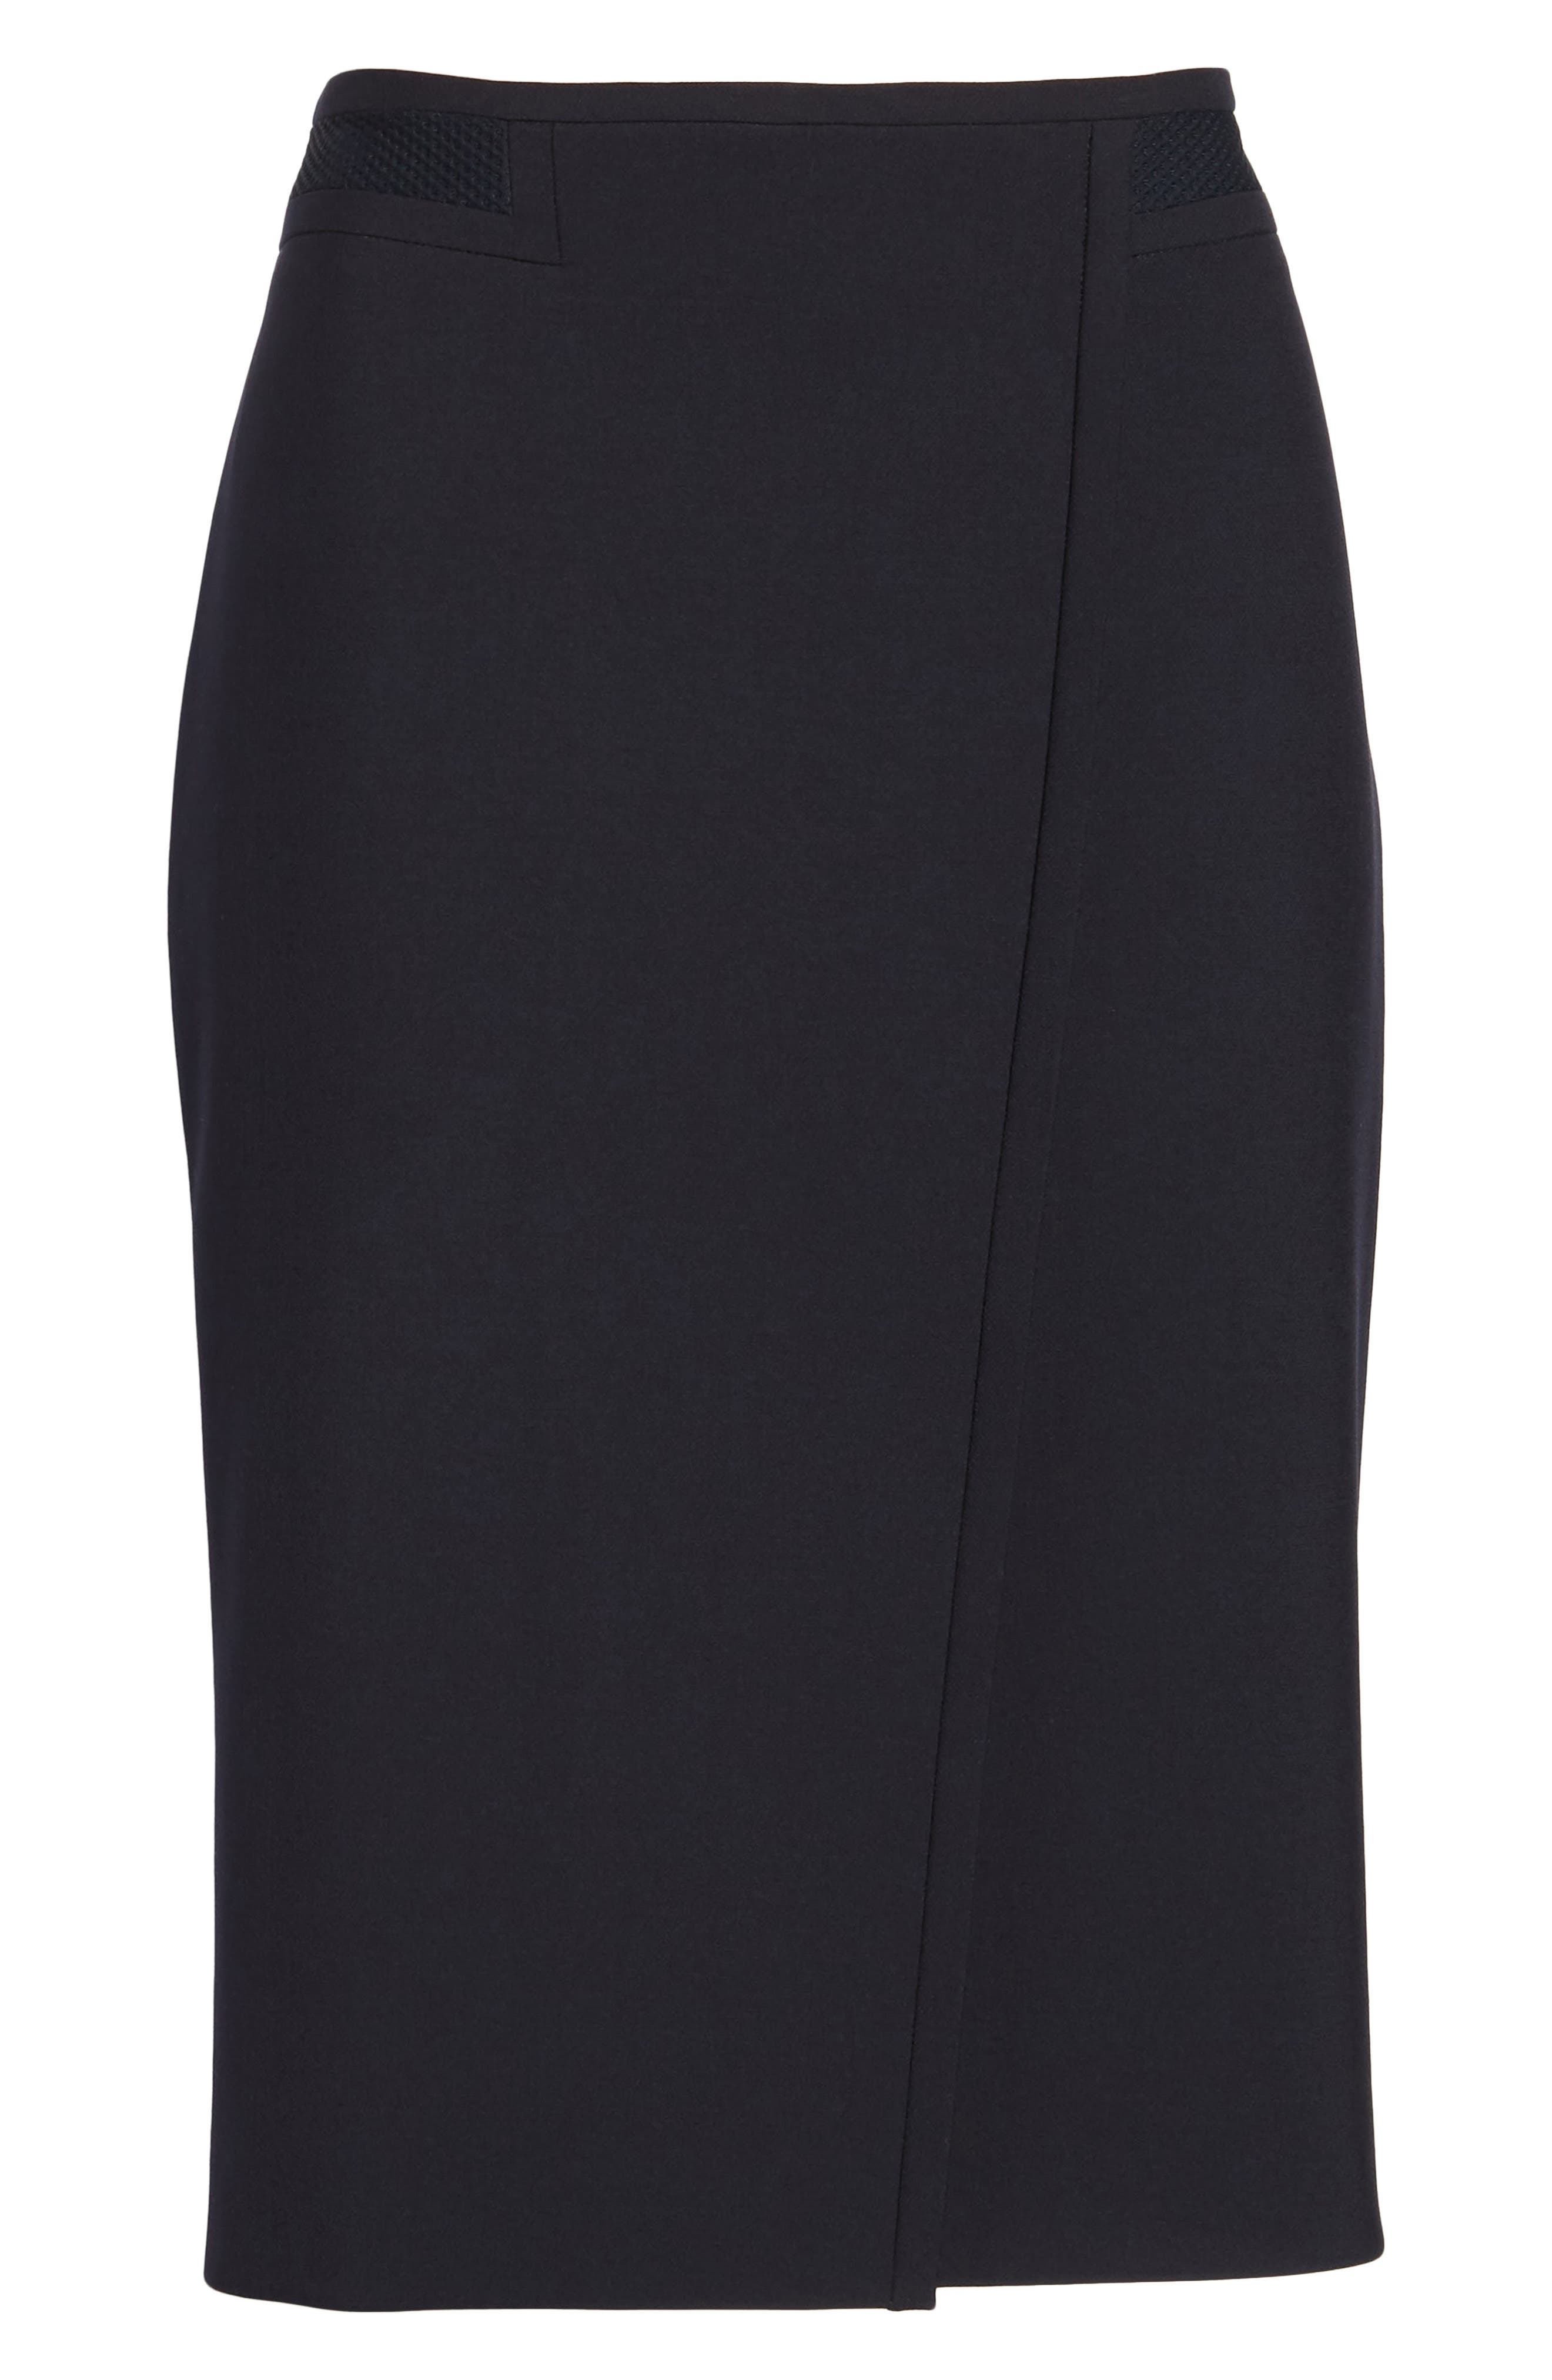 Vadama Ponte Pencil Skirt,                             Alternate thumbnail 6, color,